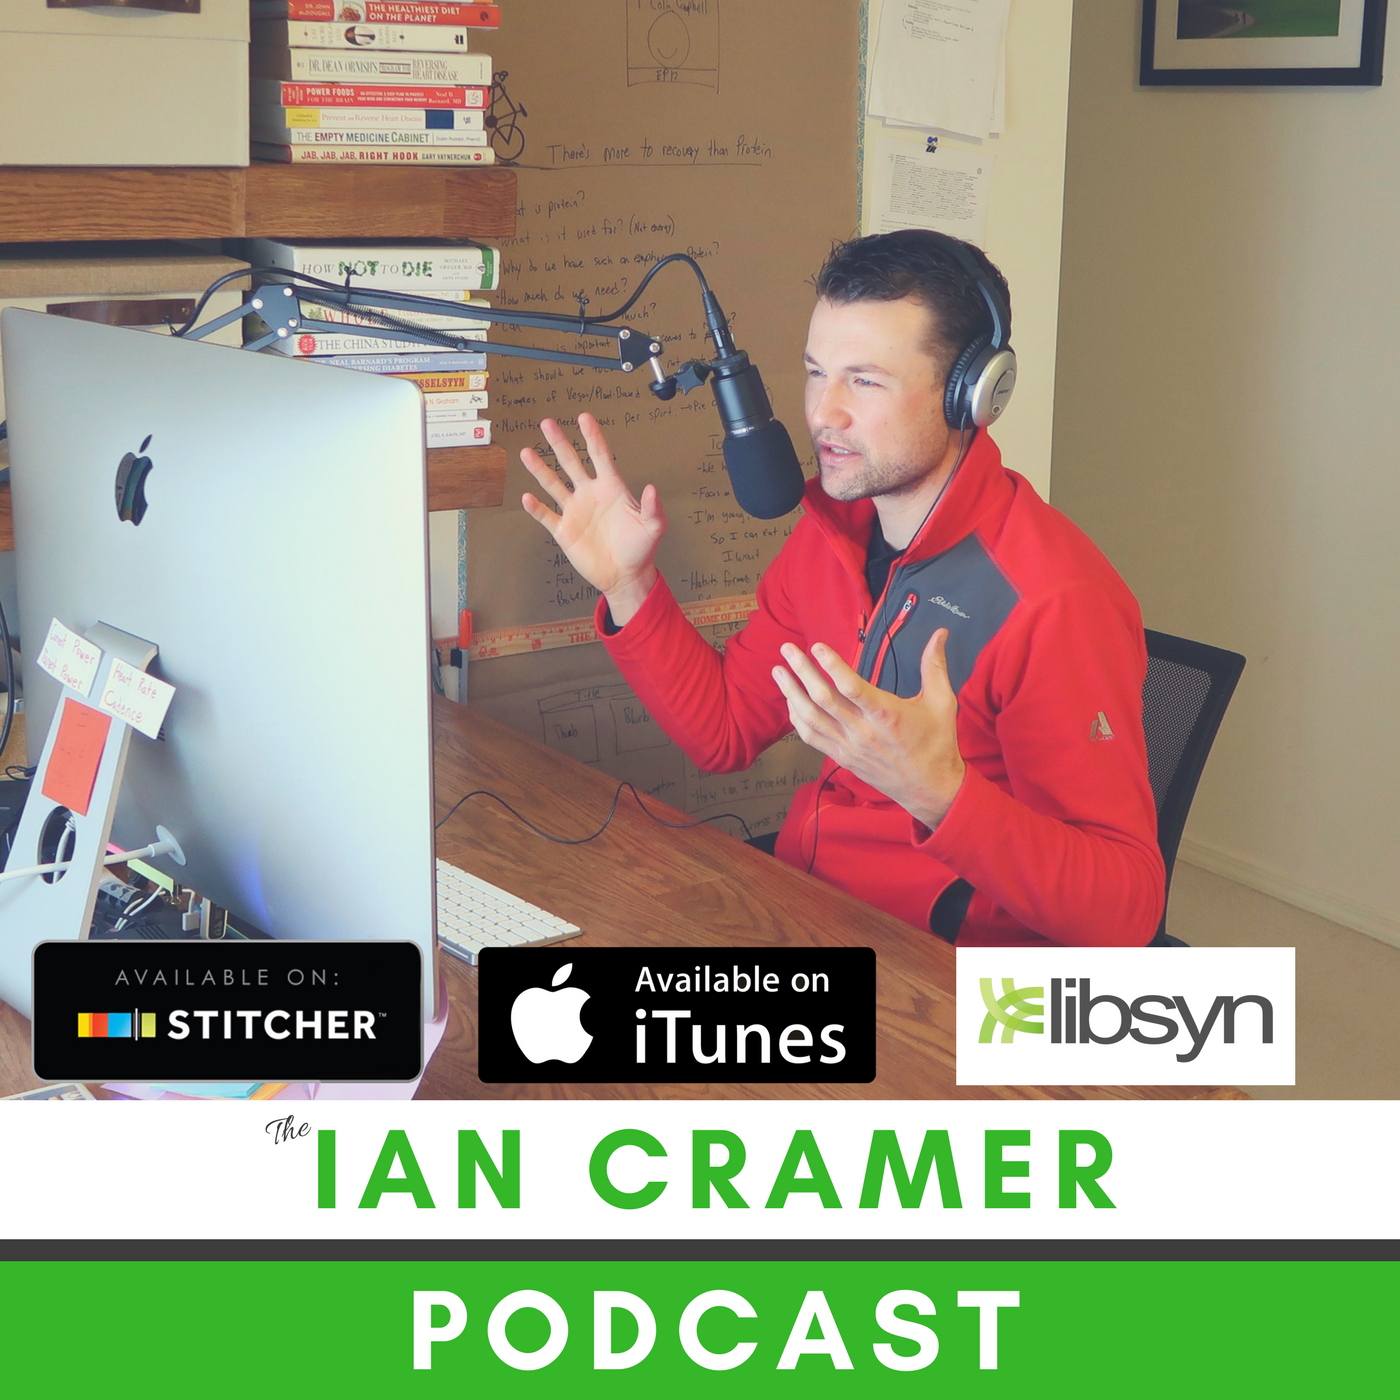 The Ian Cramer Podcast